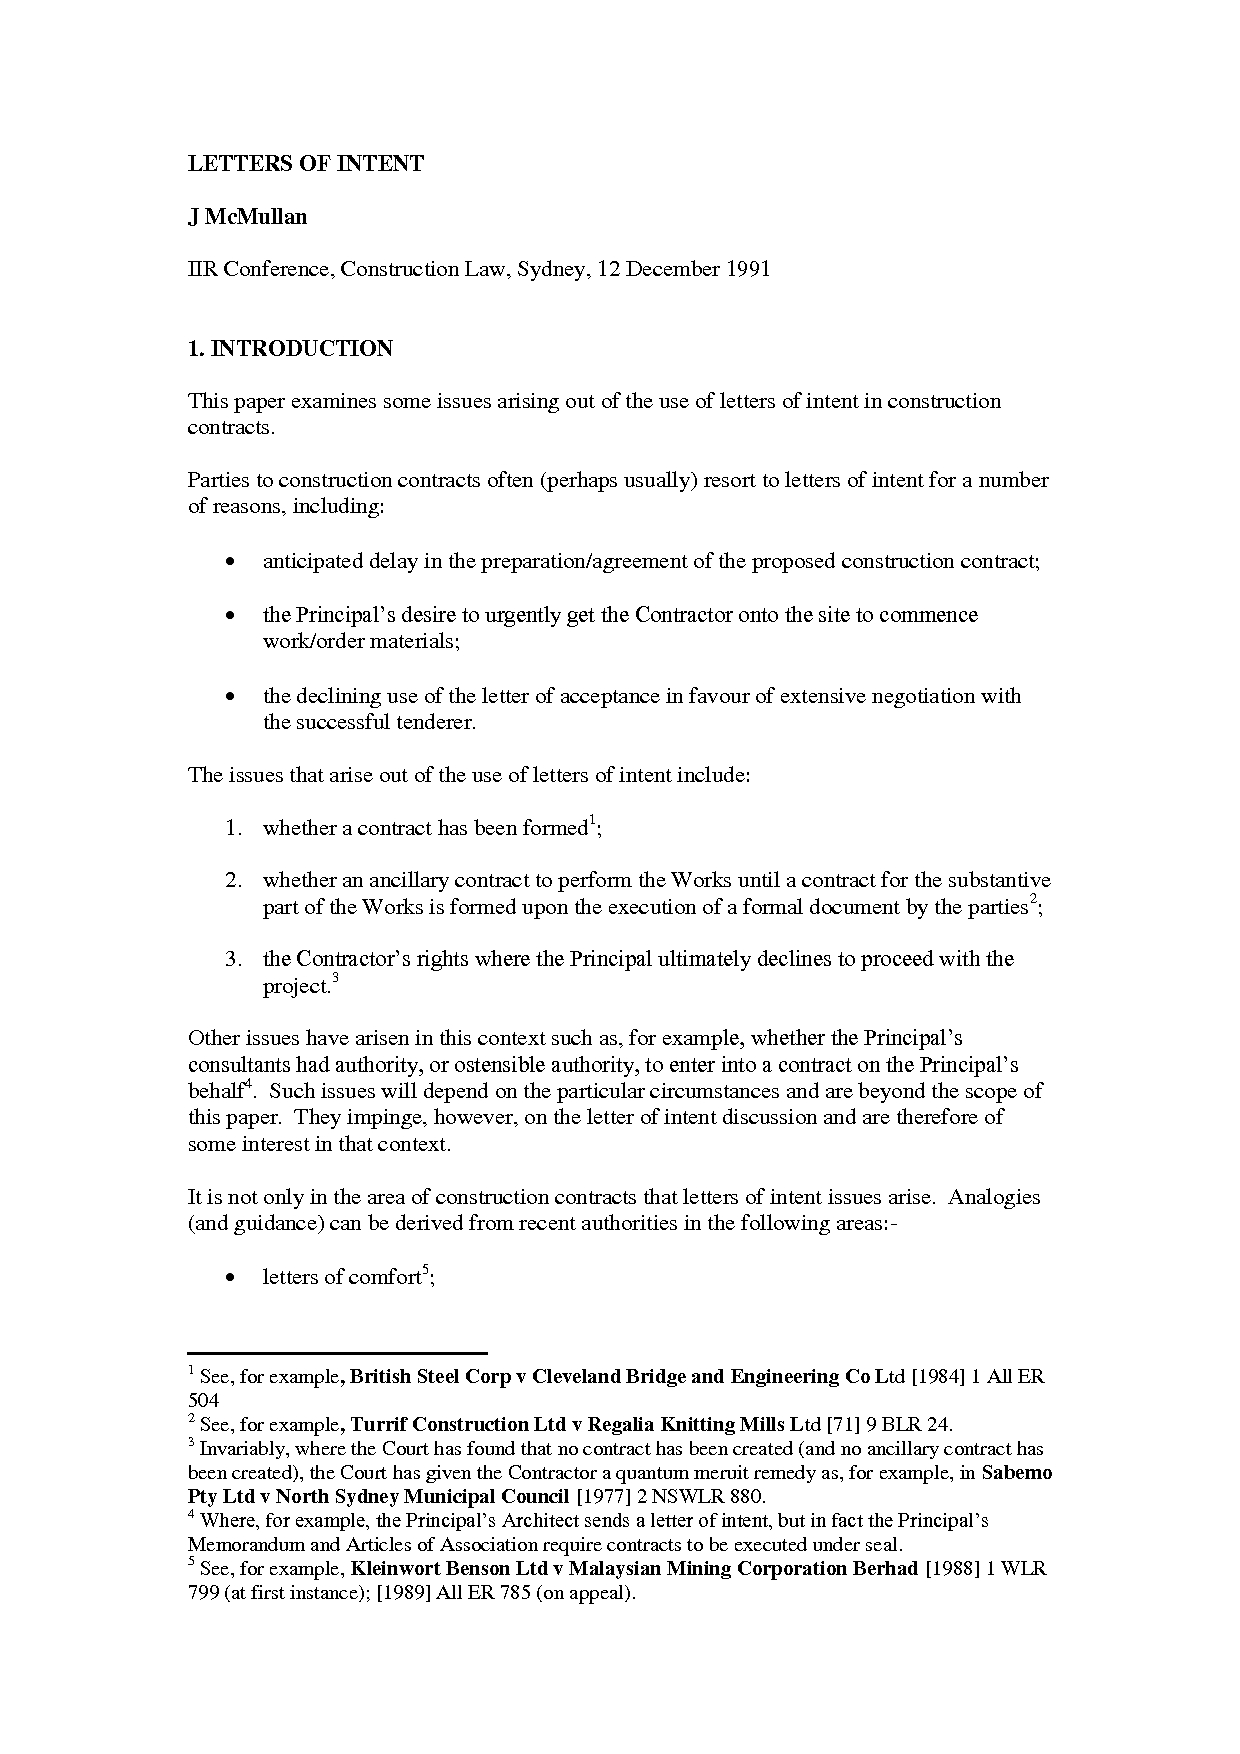 Letter Of Intent Construction Template - Construction Letter Intent Template format to Lien Highest